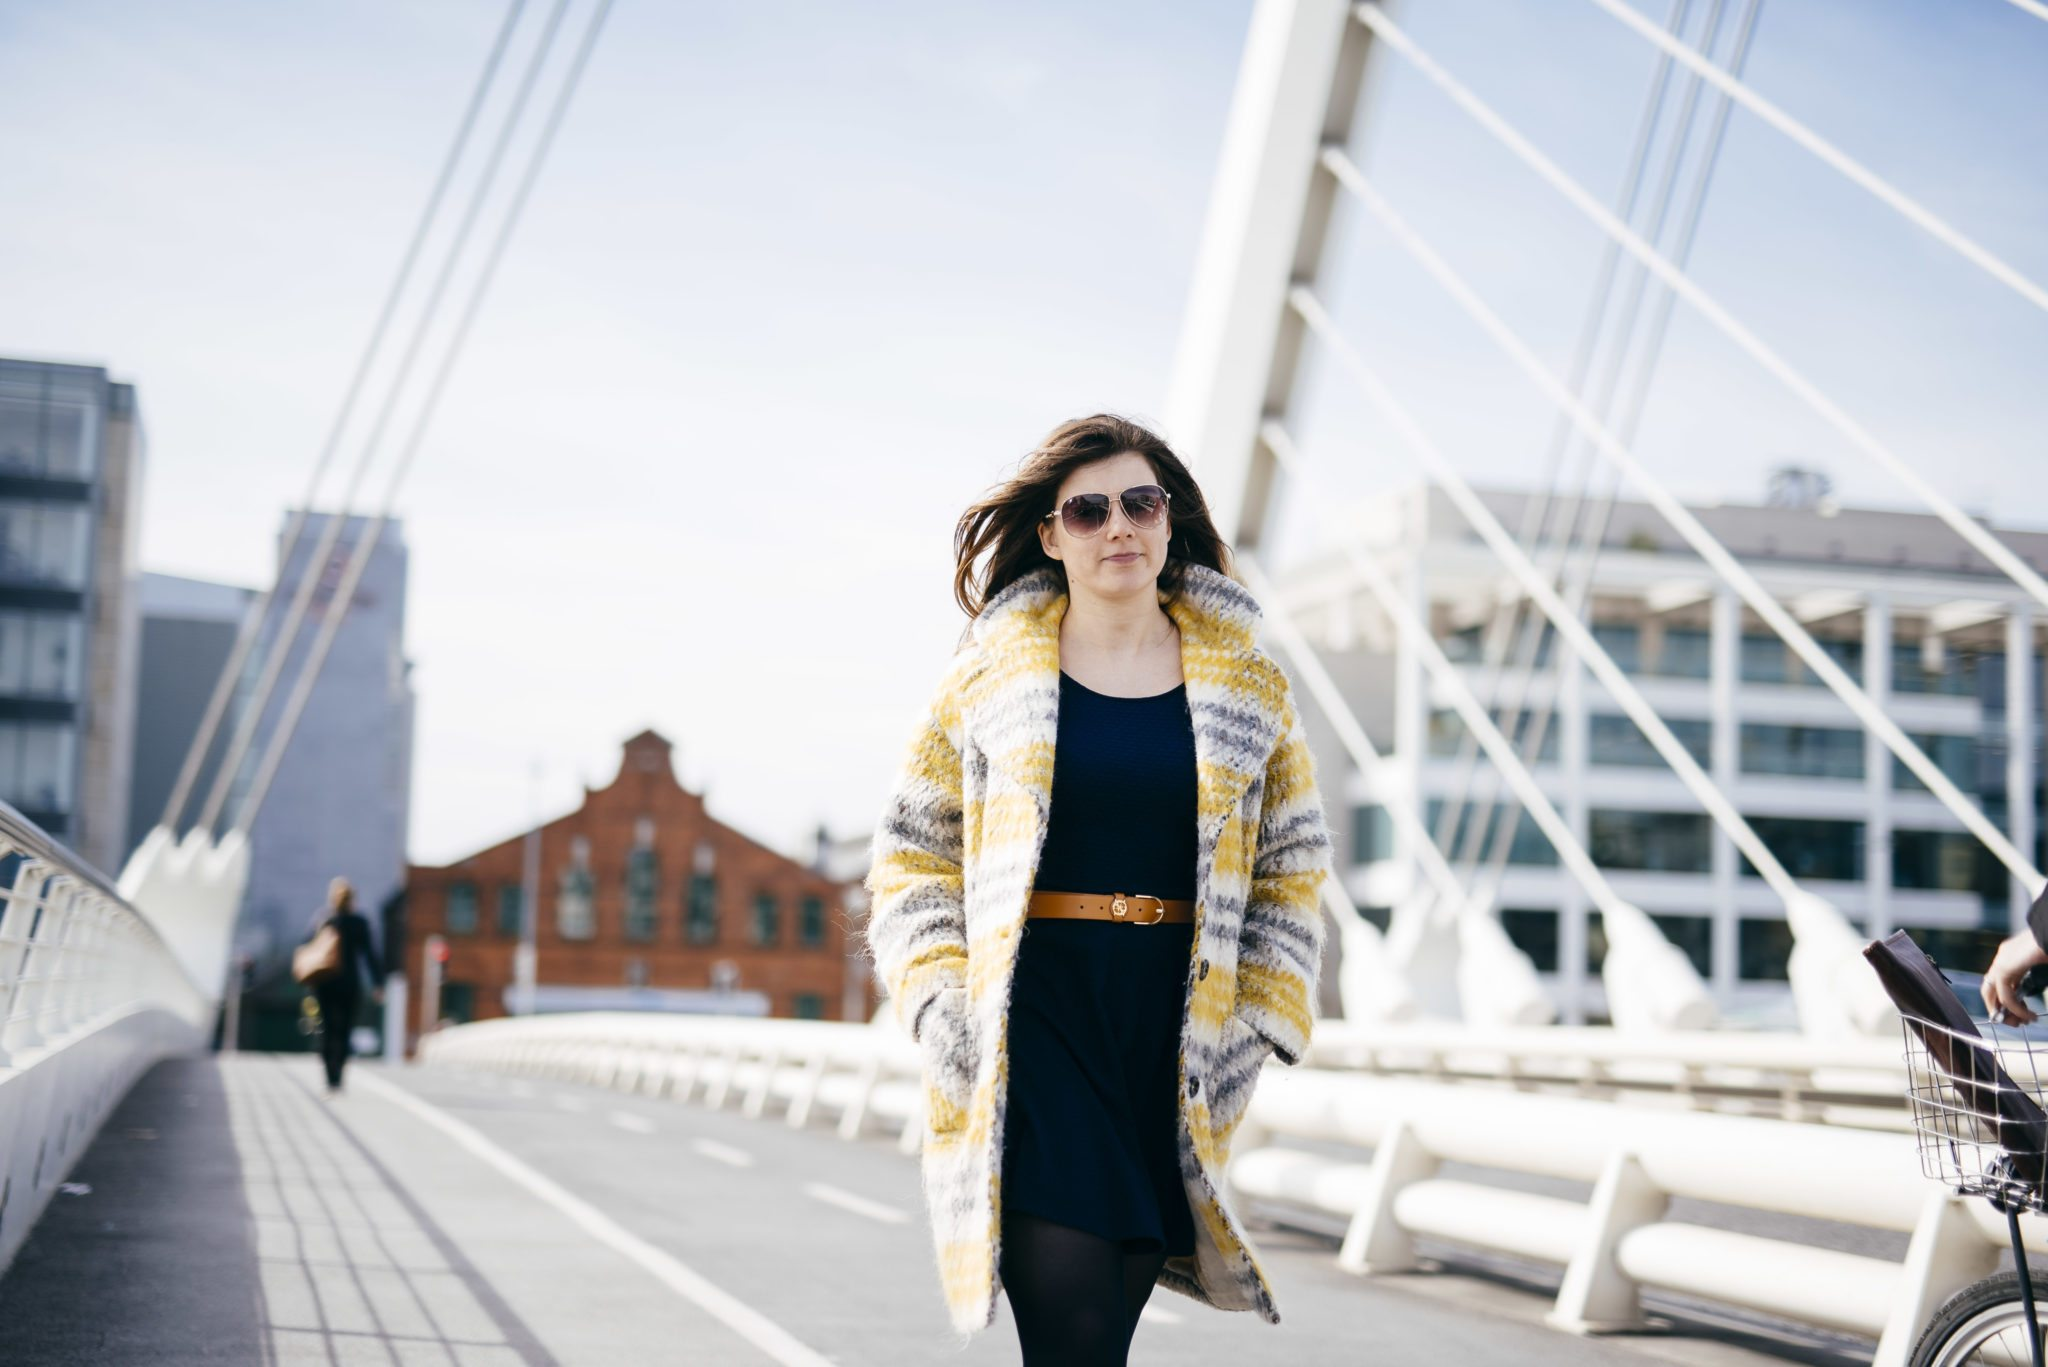 Maja walking on Samuel Beckett bridge